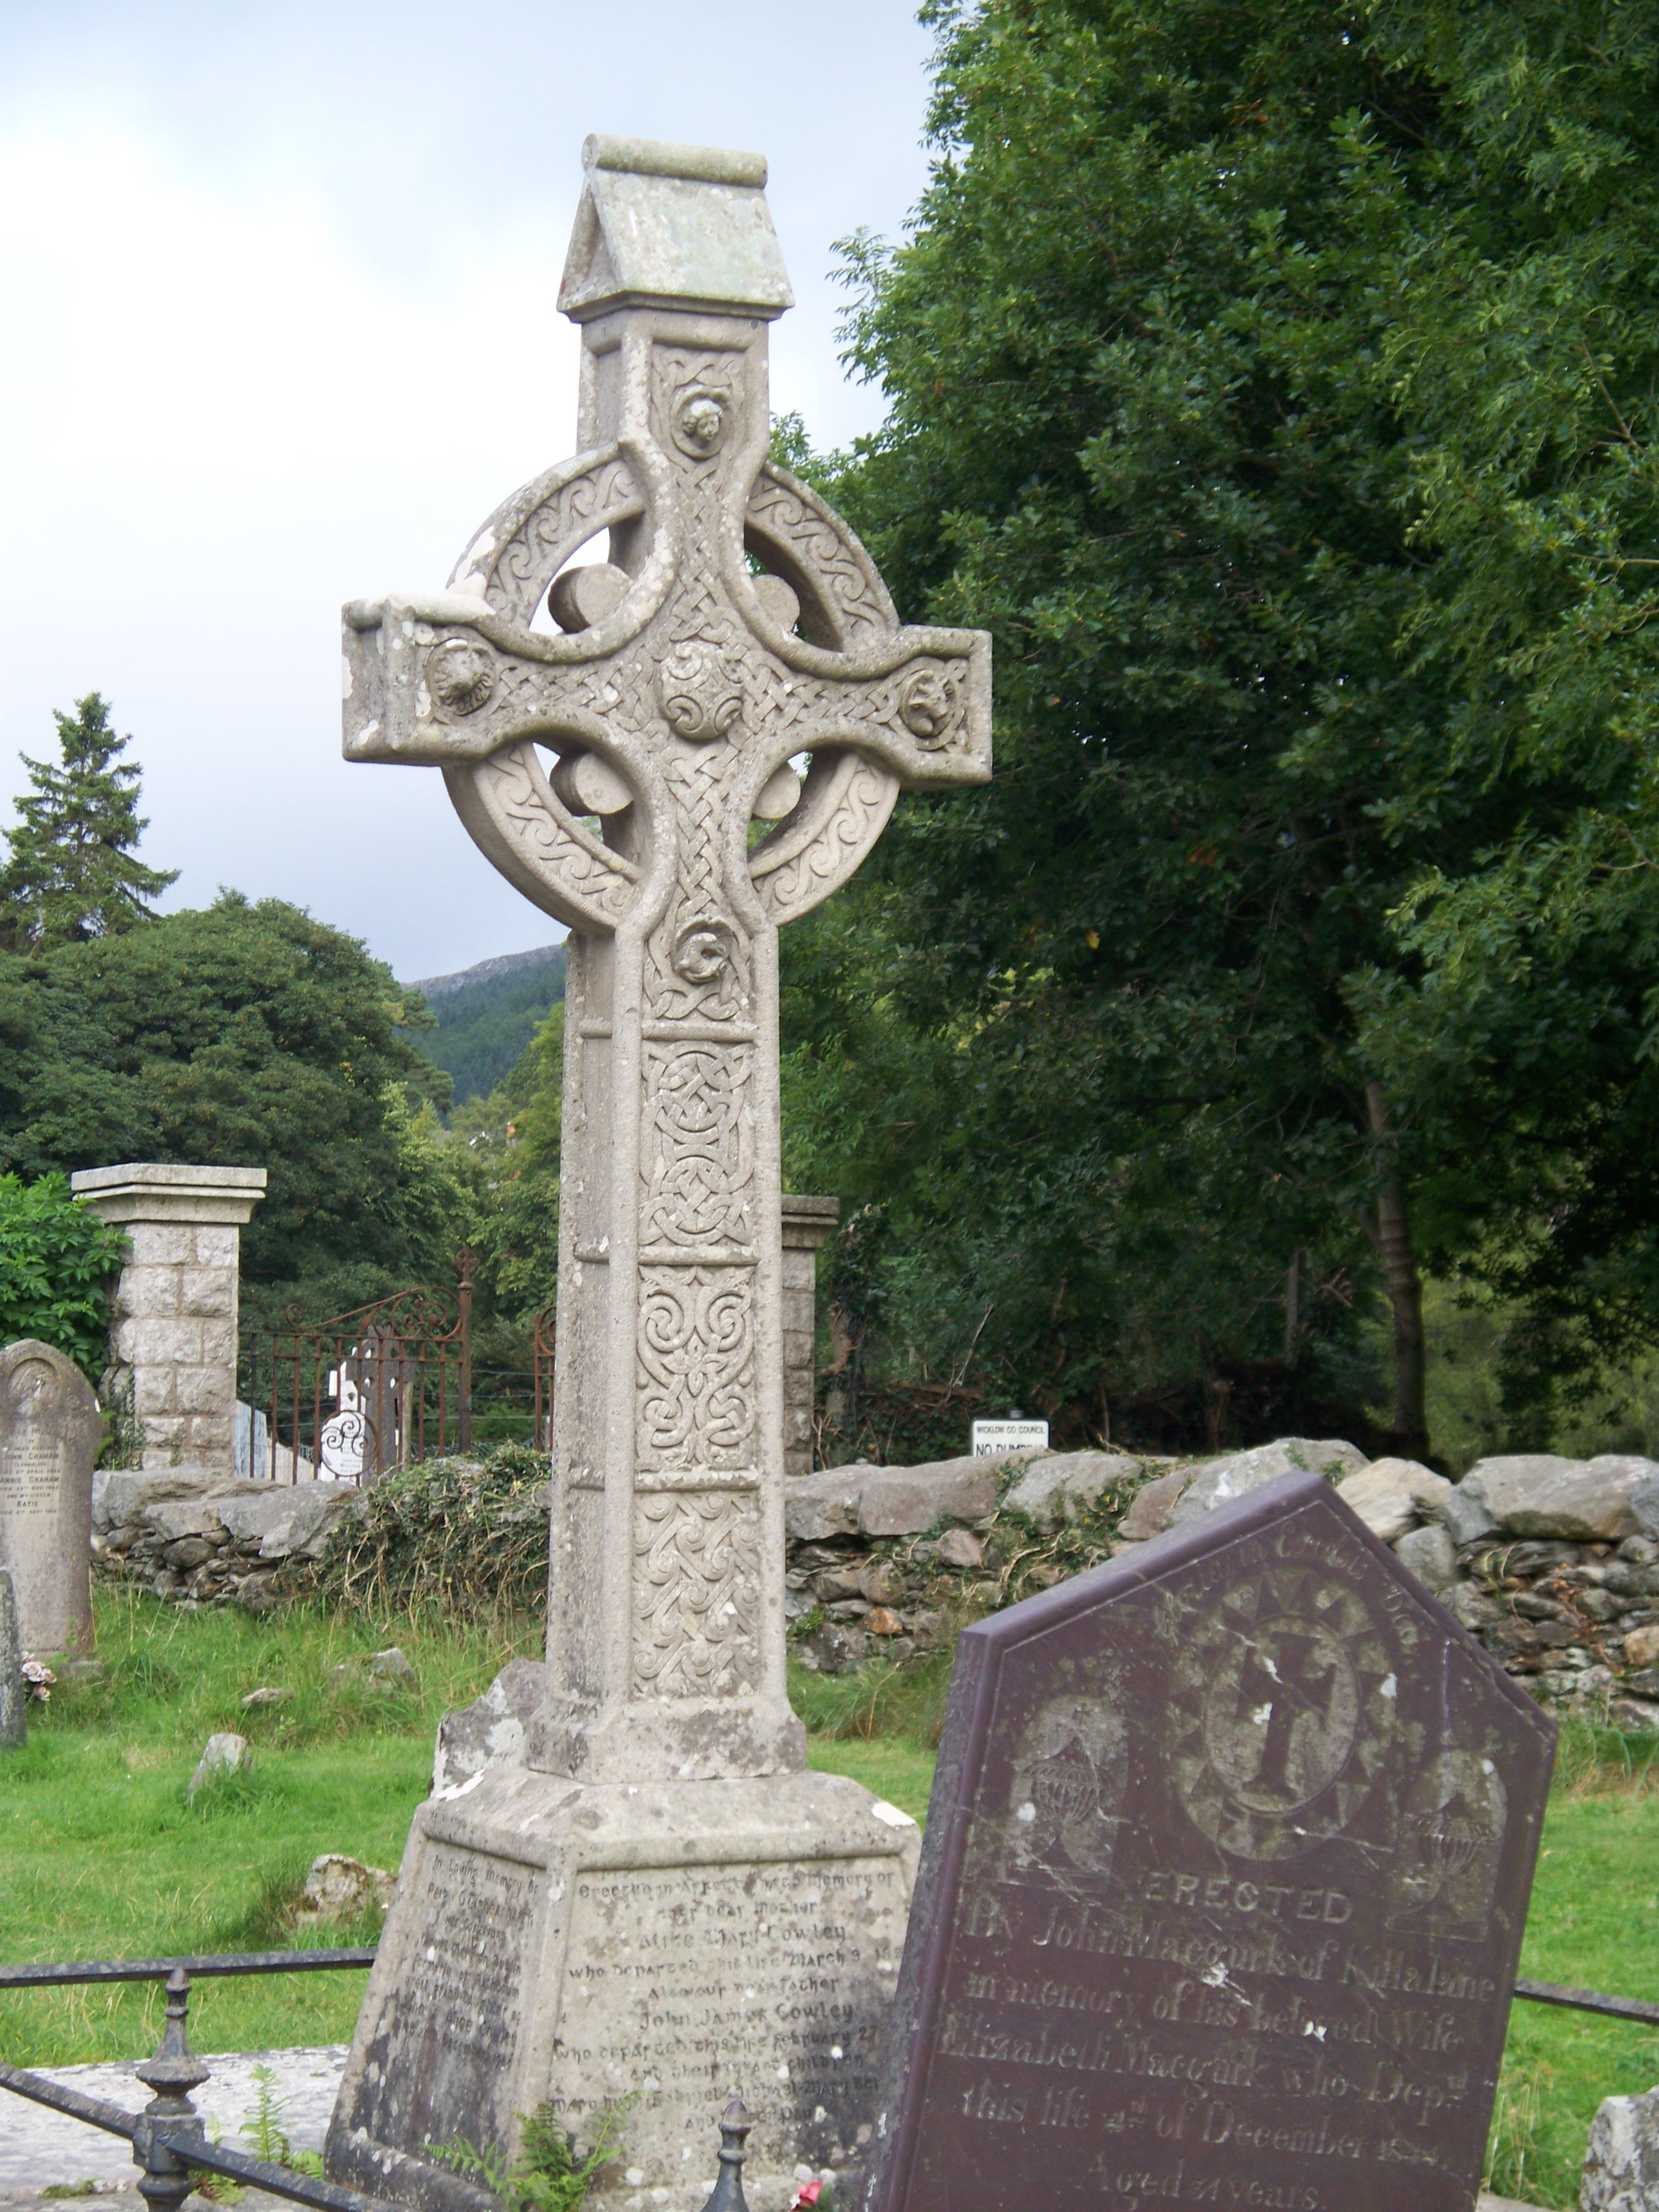 Celtic Cross at St. Kevin's Church and Cemetery in Glendolough